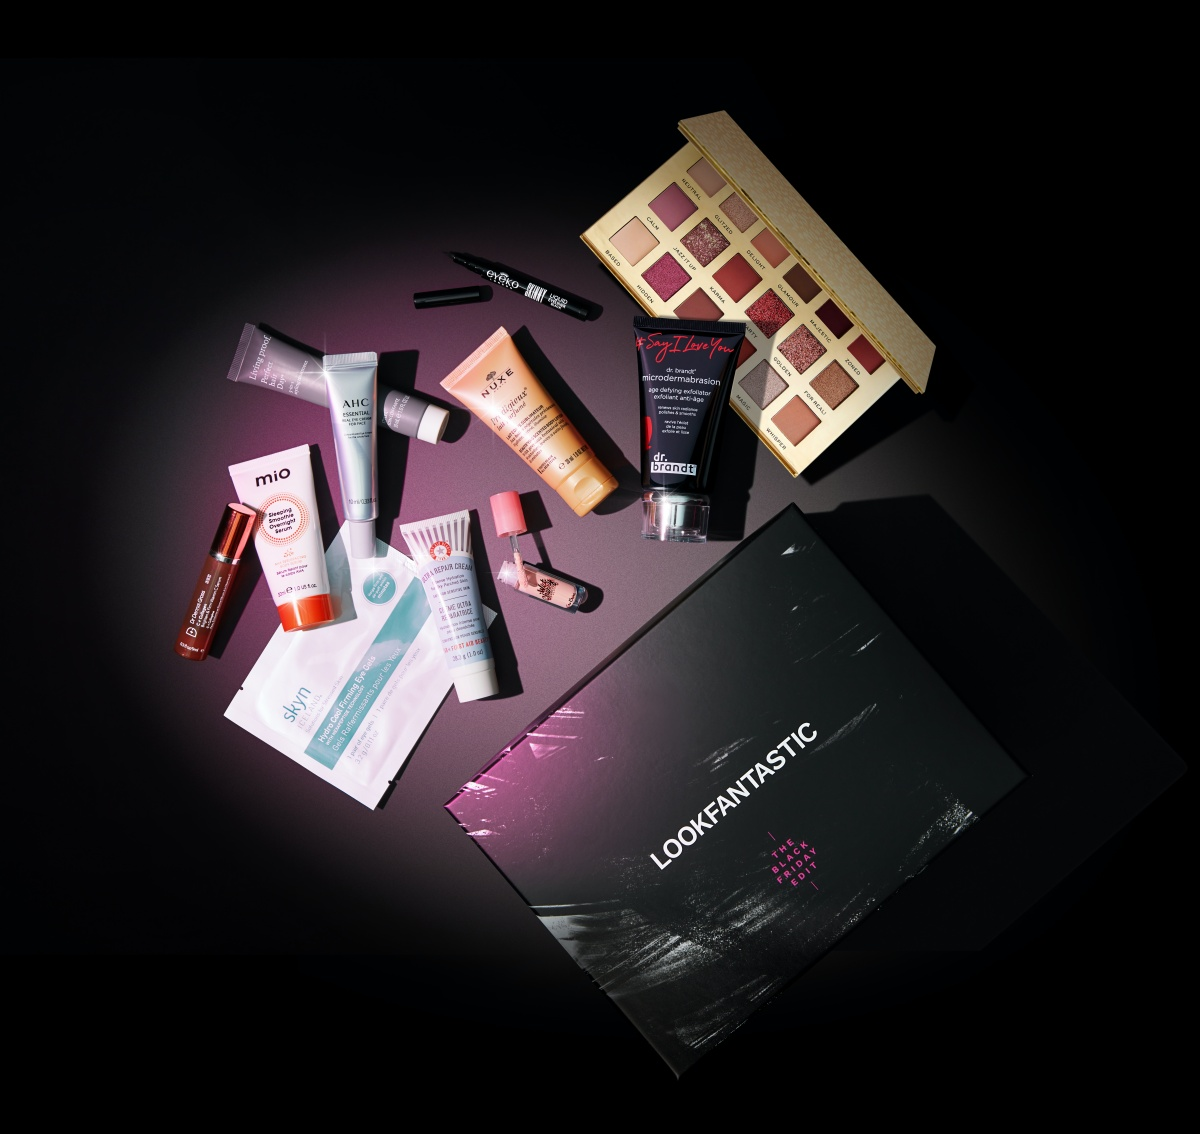 LookFantastic Limited Edition Black Friday Box 2020